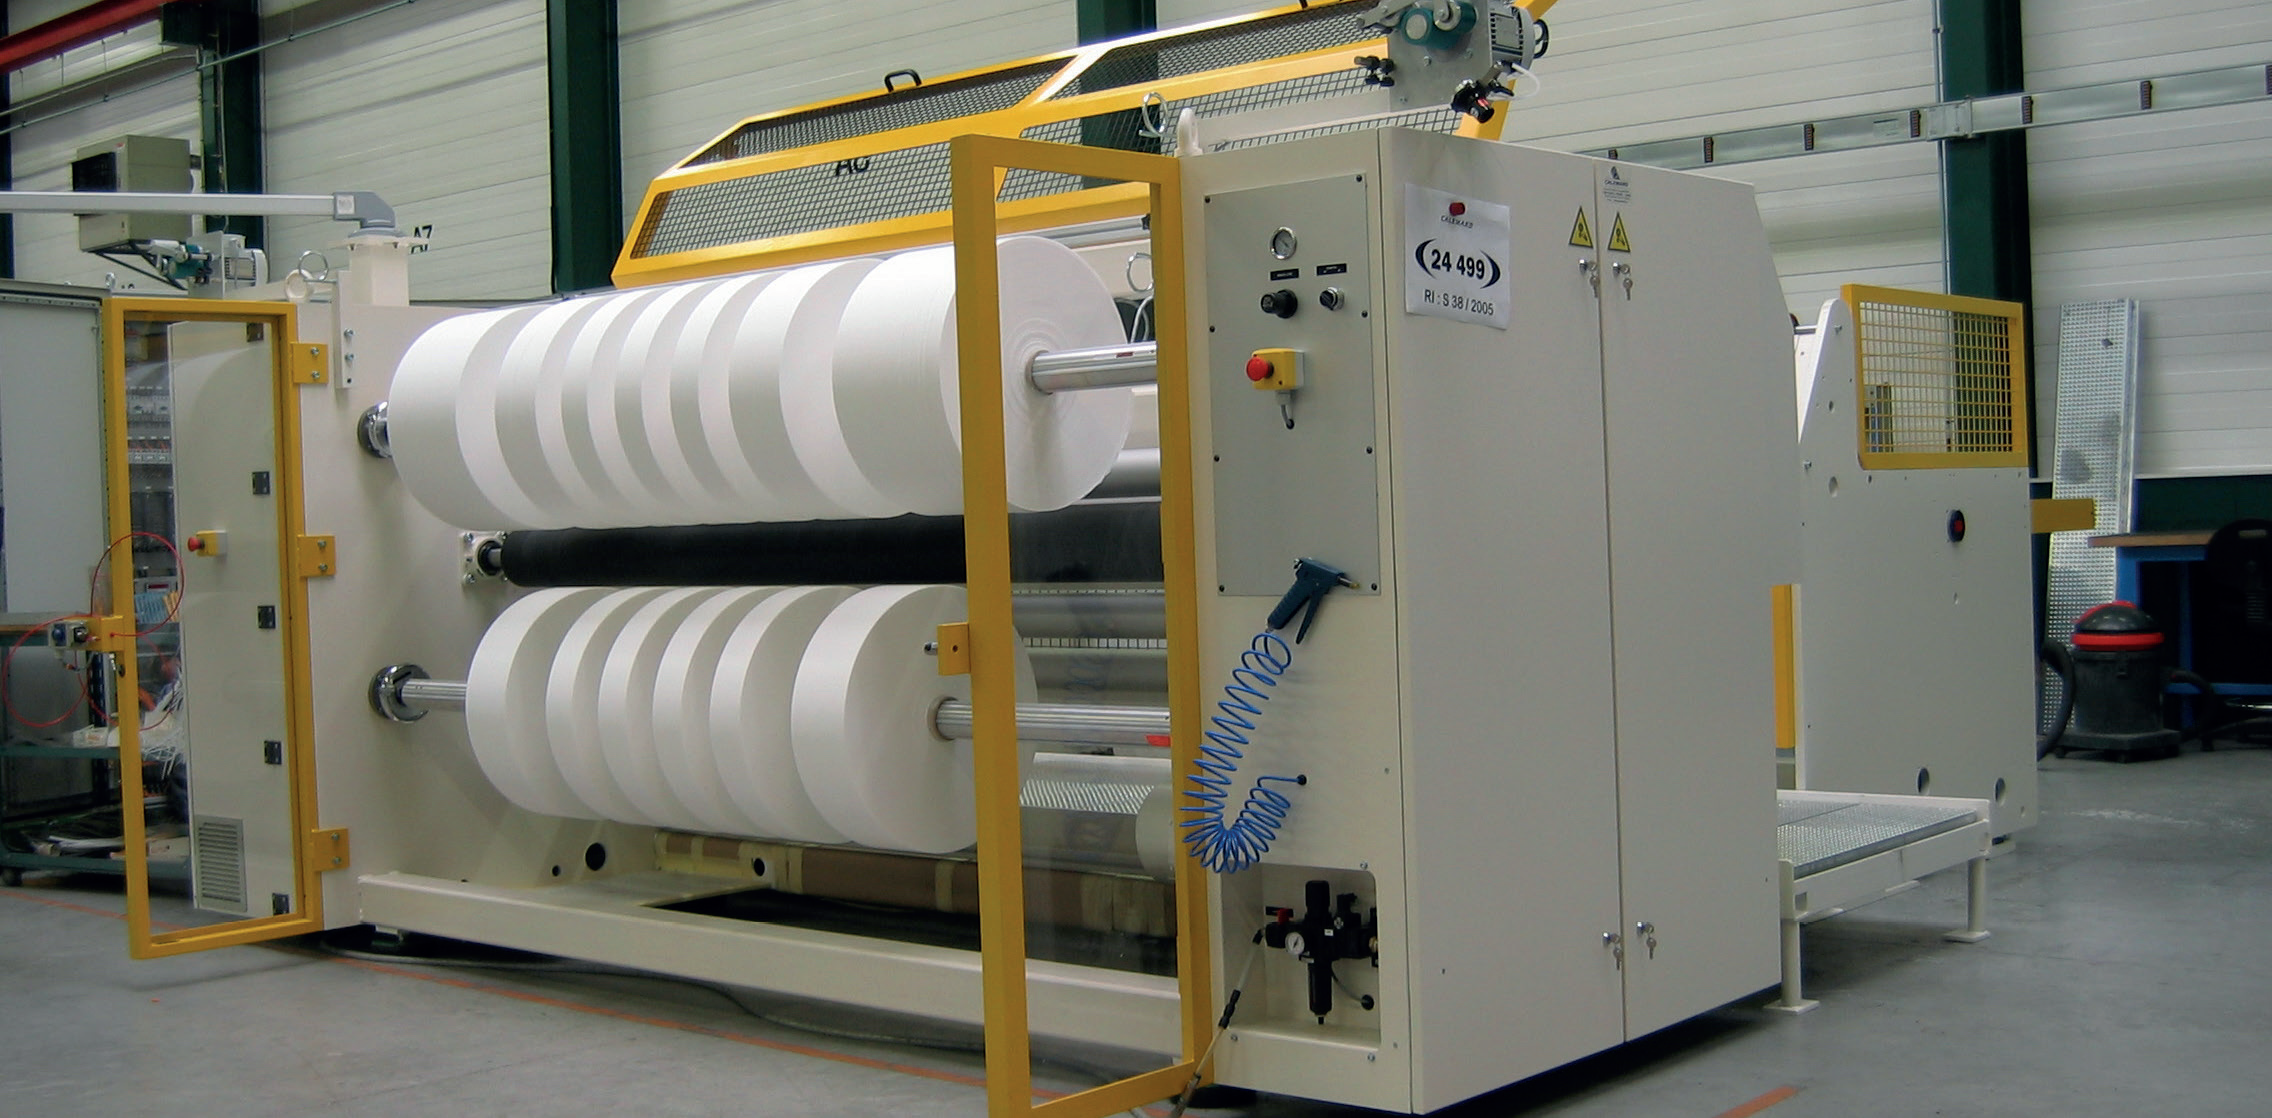 Spoolex: Address for Innovative Technologies for Tension Sensitive Materials